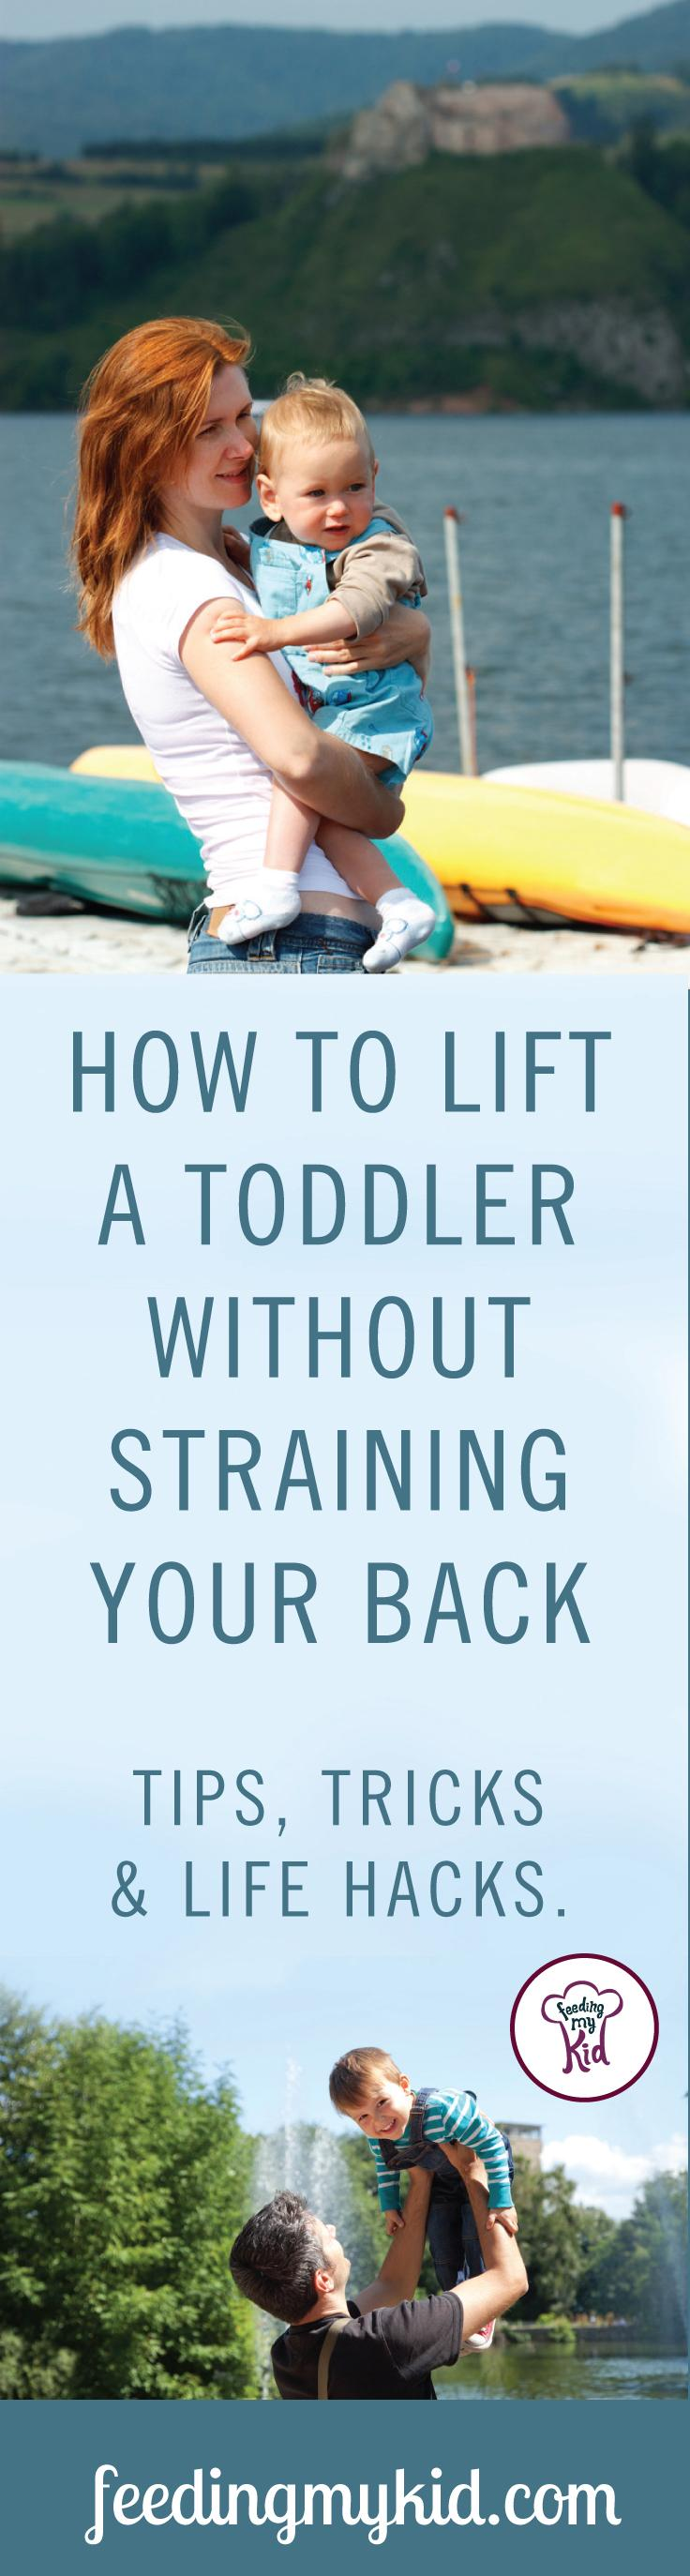 Learning how to lift a toddler properly is an important part of parenting. Let's face it, we aren't getting younger and it's important to focus on developing proper form when it comes to picking up your kid. Feeding My Kid is a filled with all the information you need about how to raise your kids, from healthy tips to nutritious recipes. #parenting #howtolift #toddlers